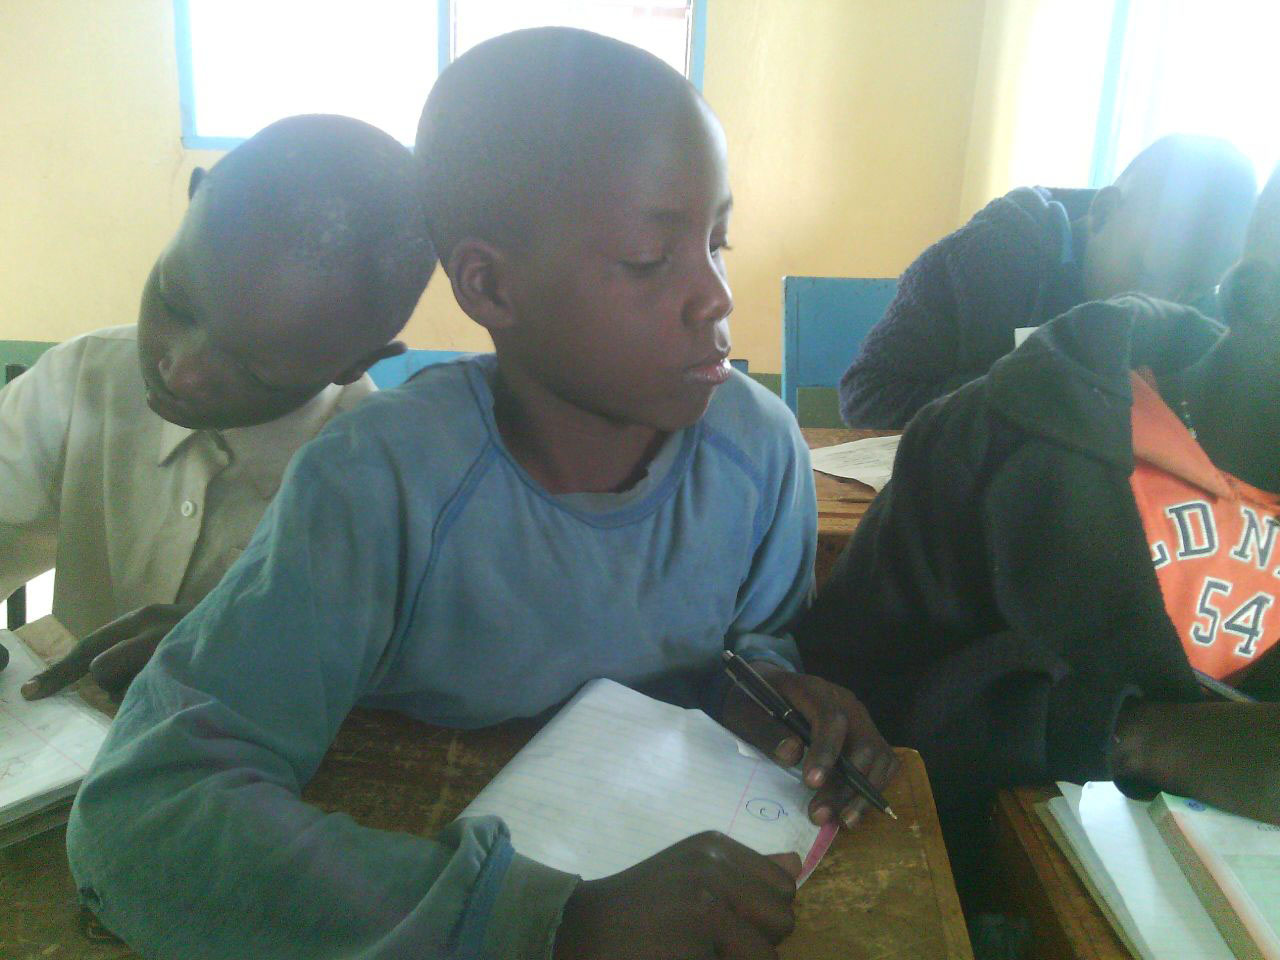 Fidel (center) loves studying math, and wants to be a doctor when he grows up.